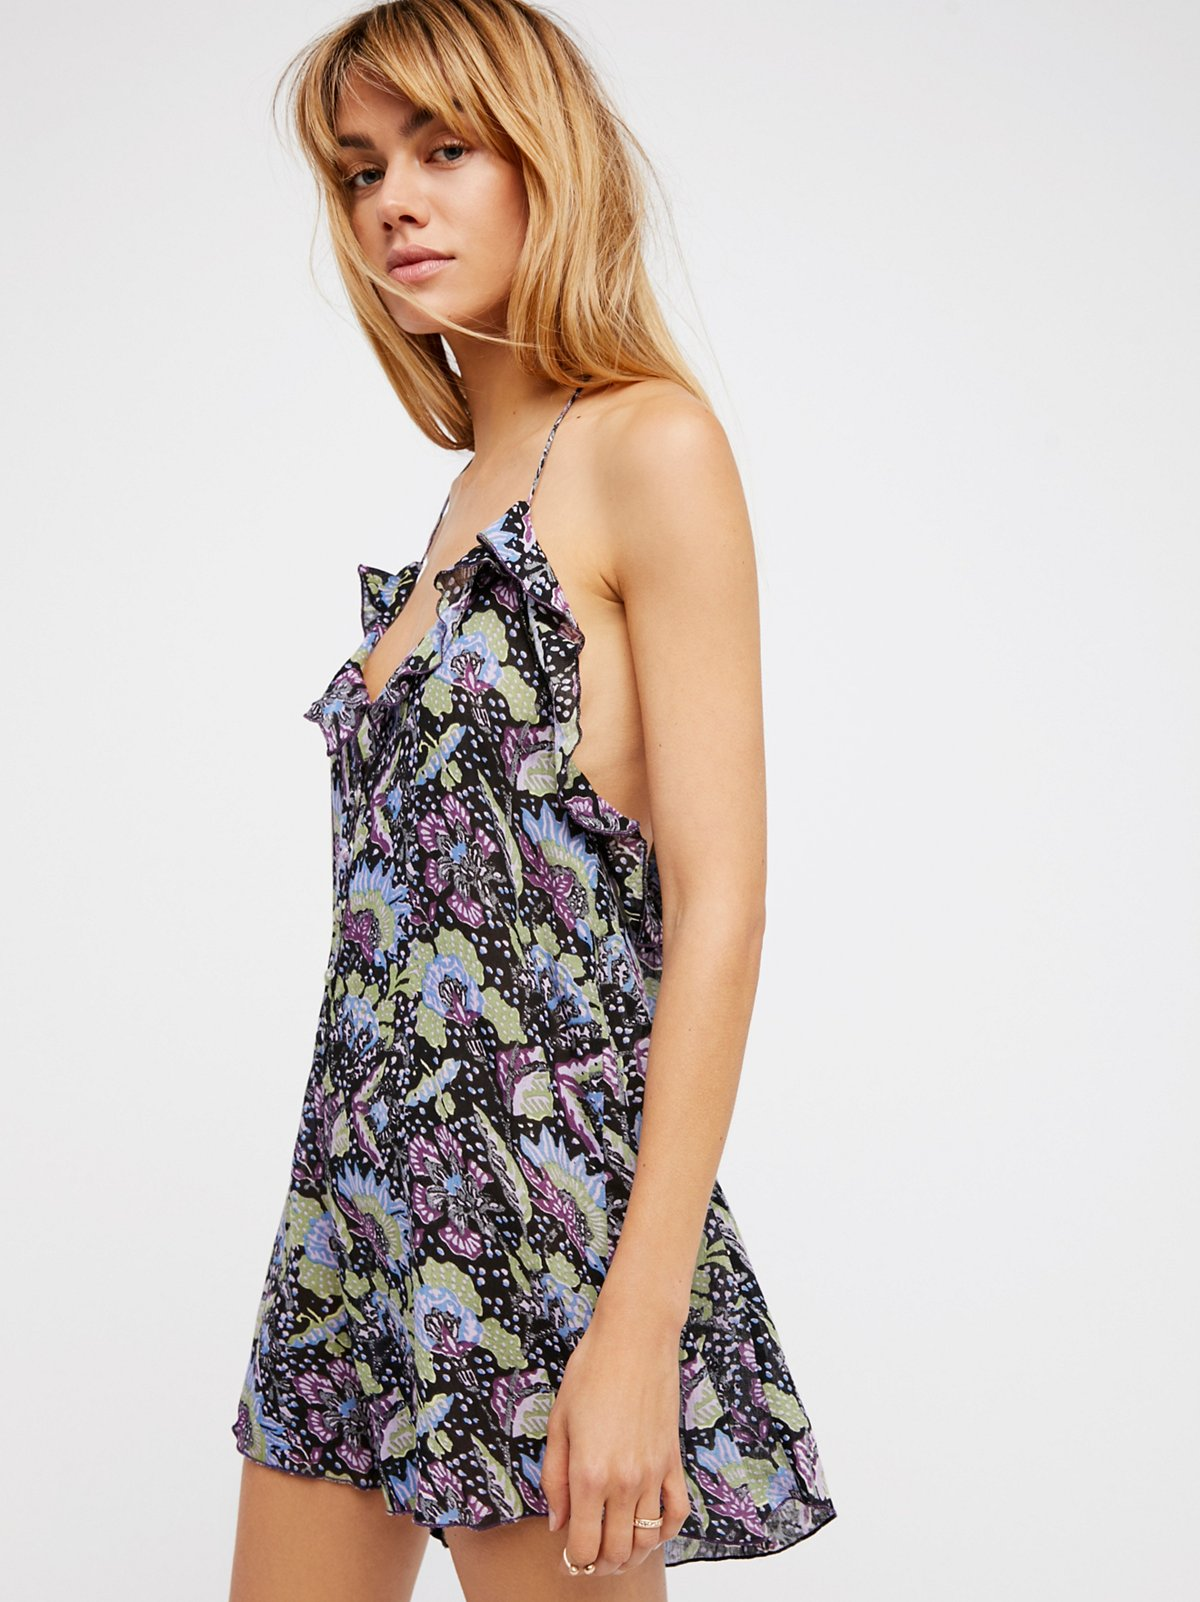 FP One Hydra Playsuit